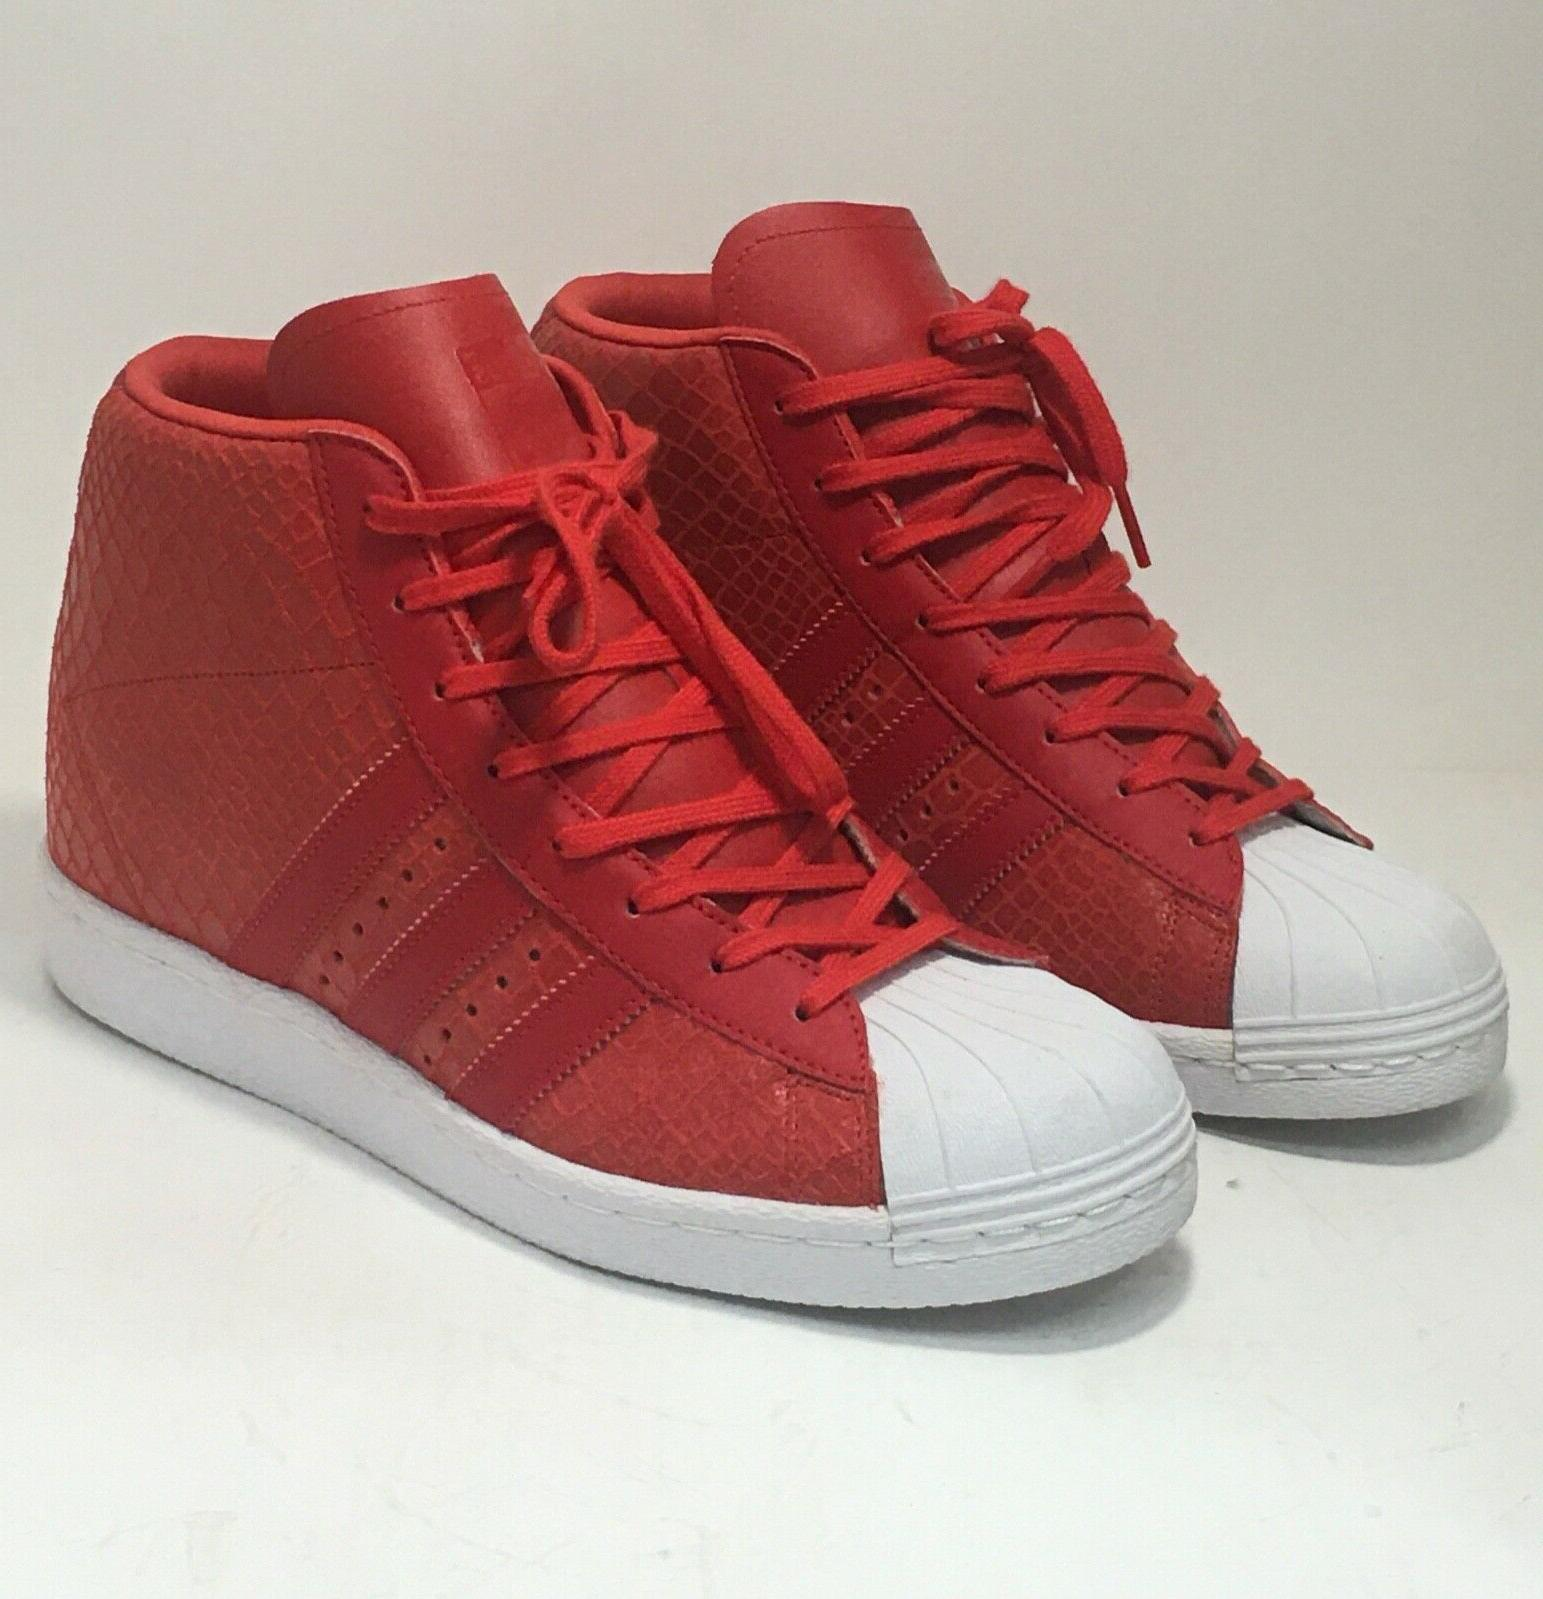 new nib red reptile superstar up shell